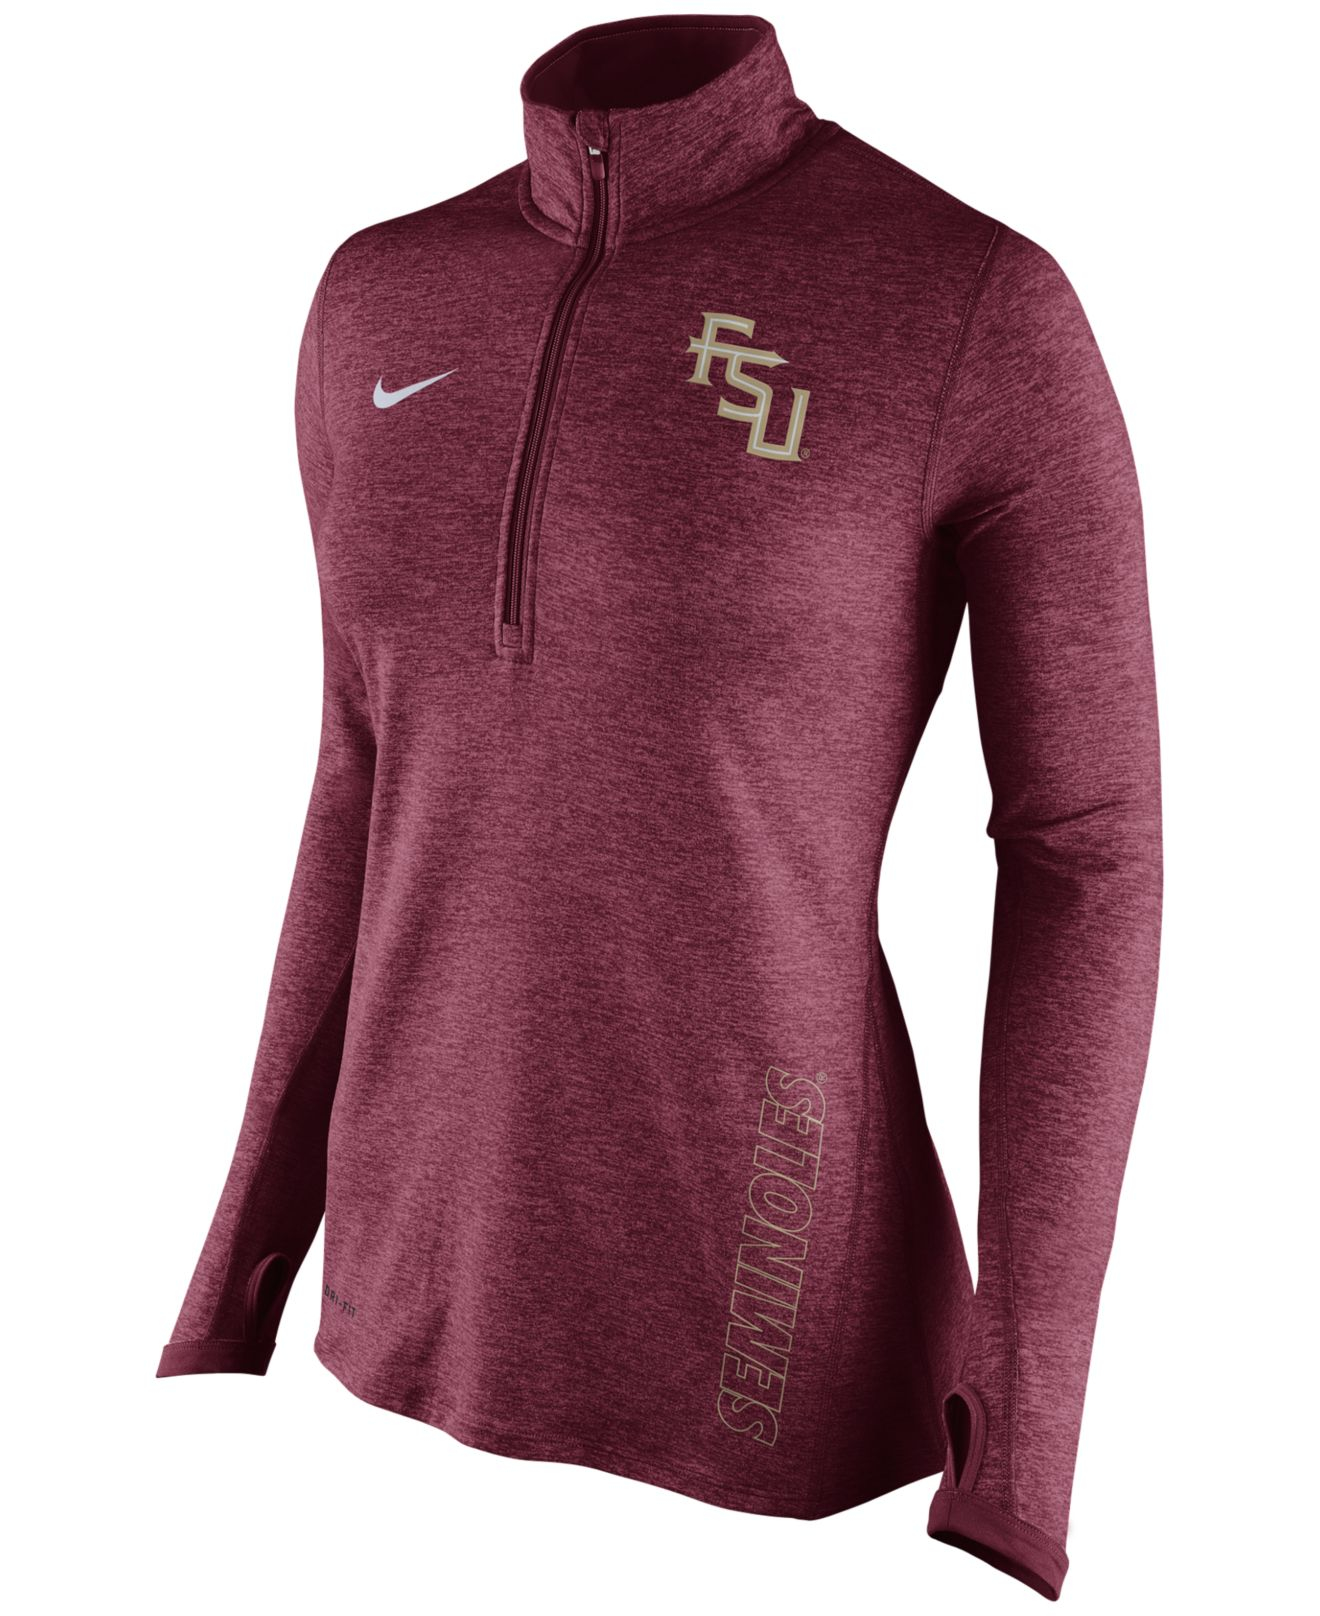 Nike Women's Florida State Seminoles Stadium Element Quarter-zip ...